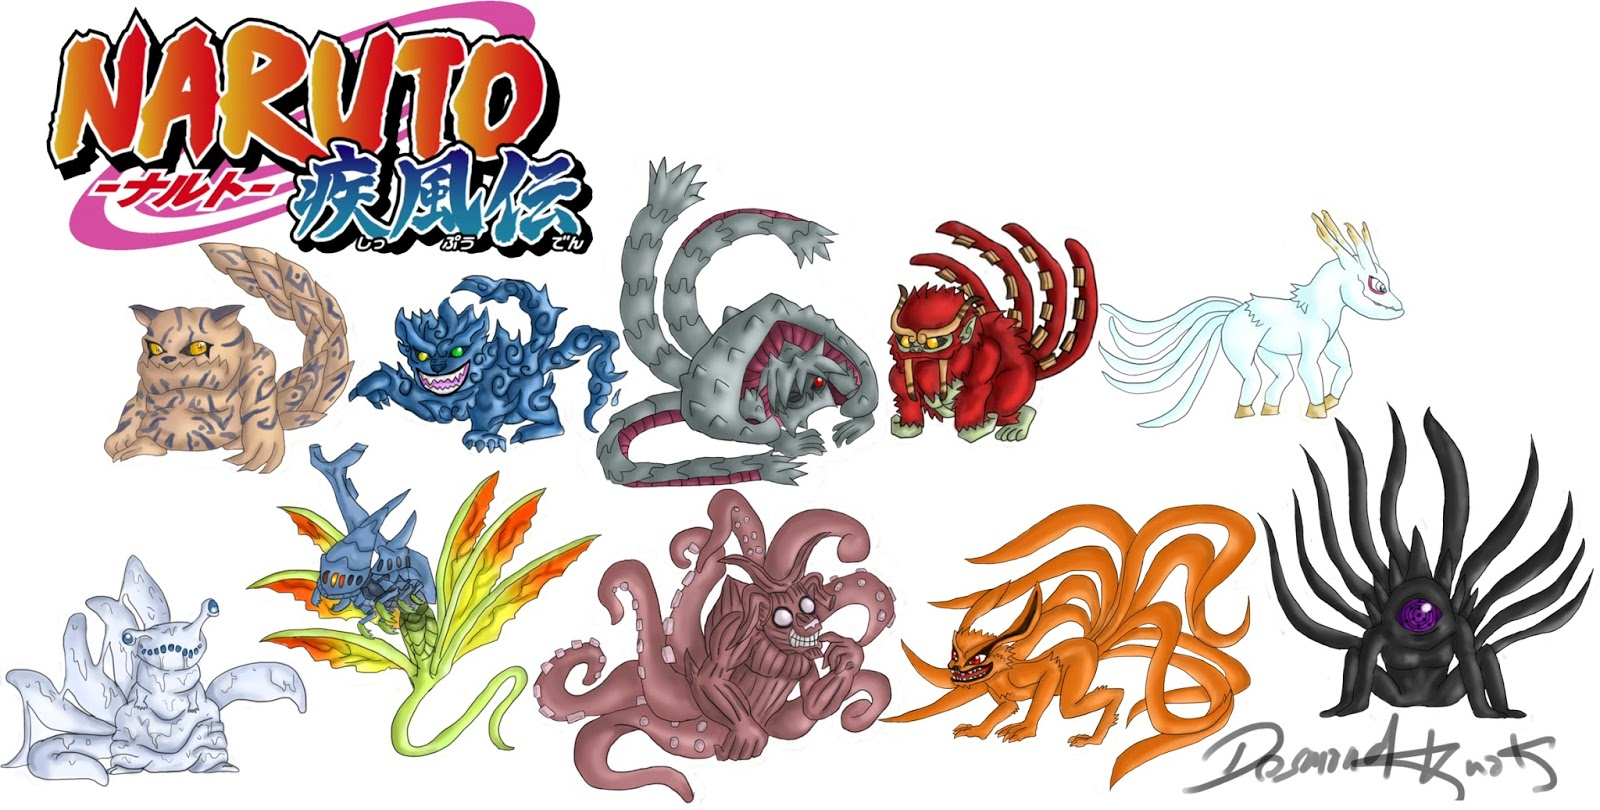 I am Clarkiilicious: #Bijuus [Tailed BEASTS] in NARUTO